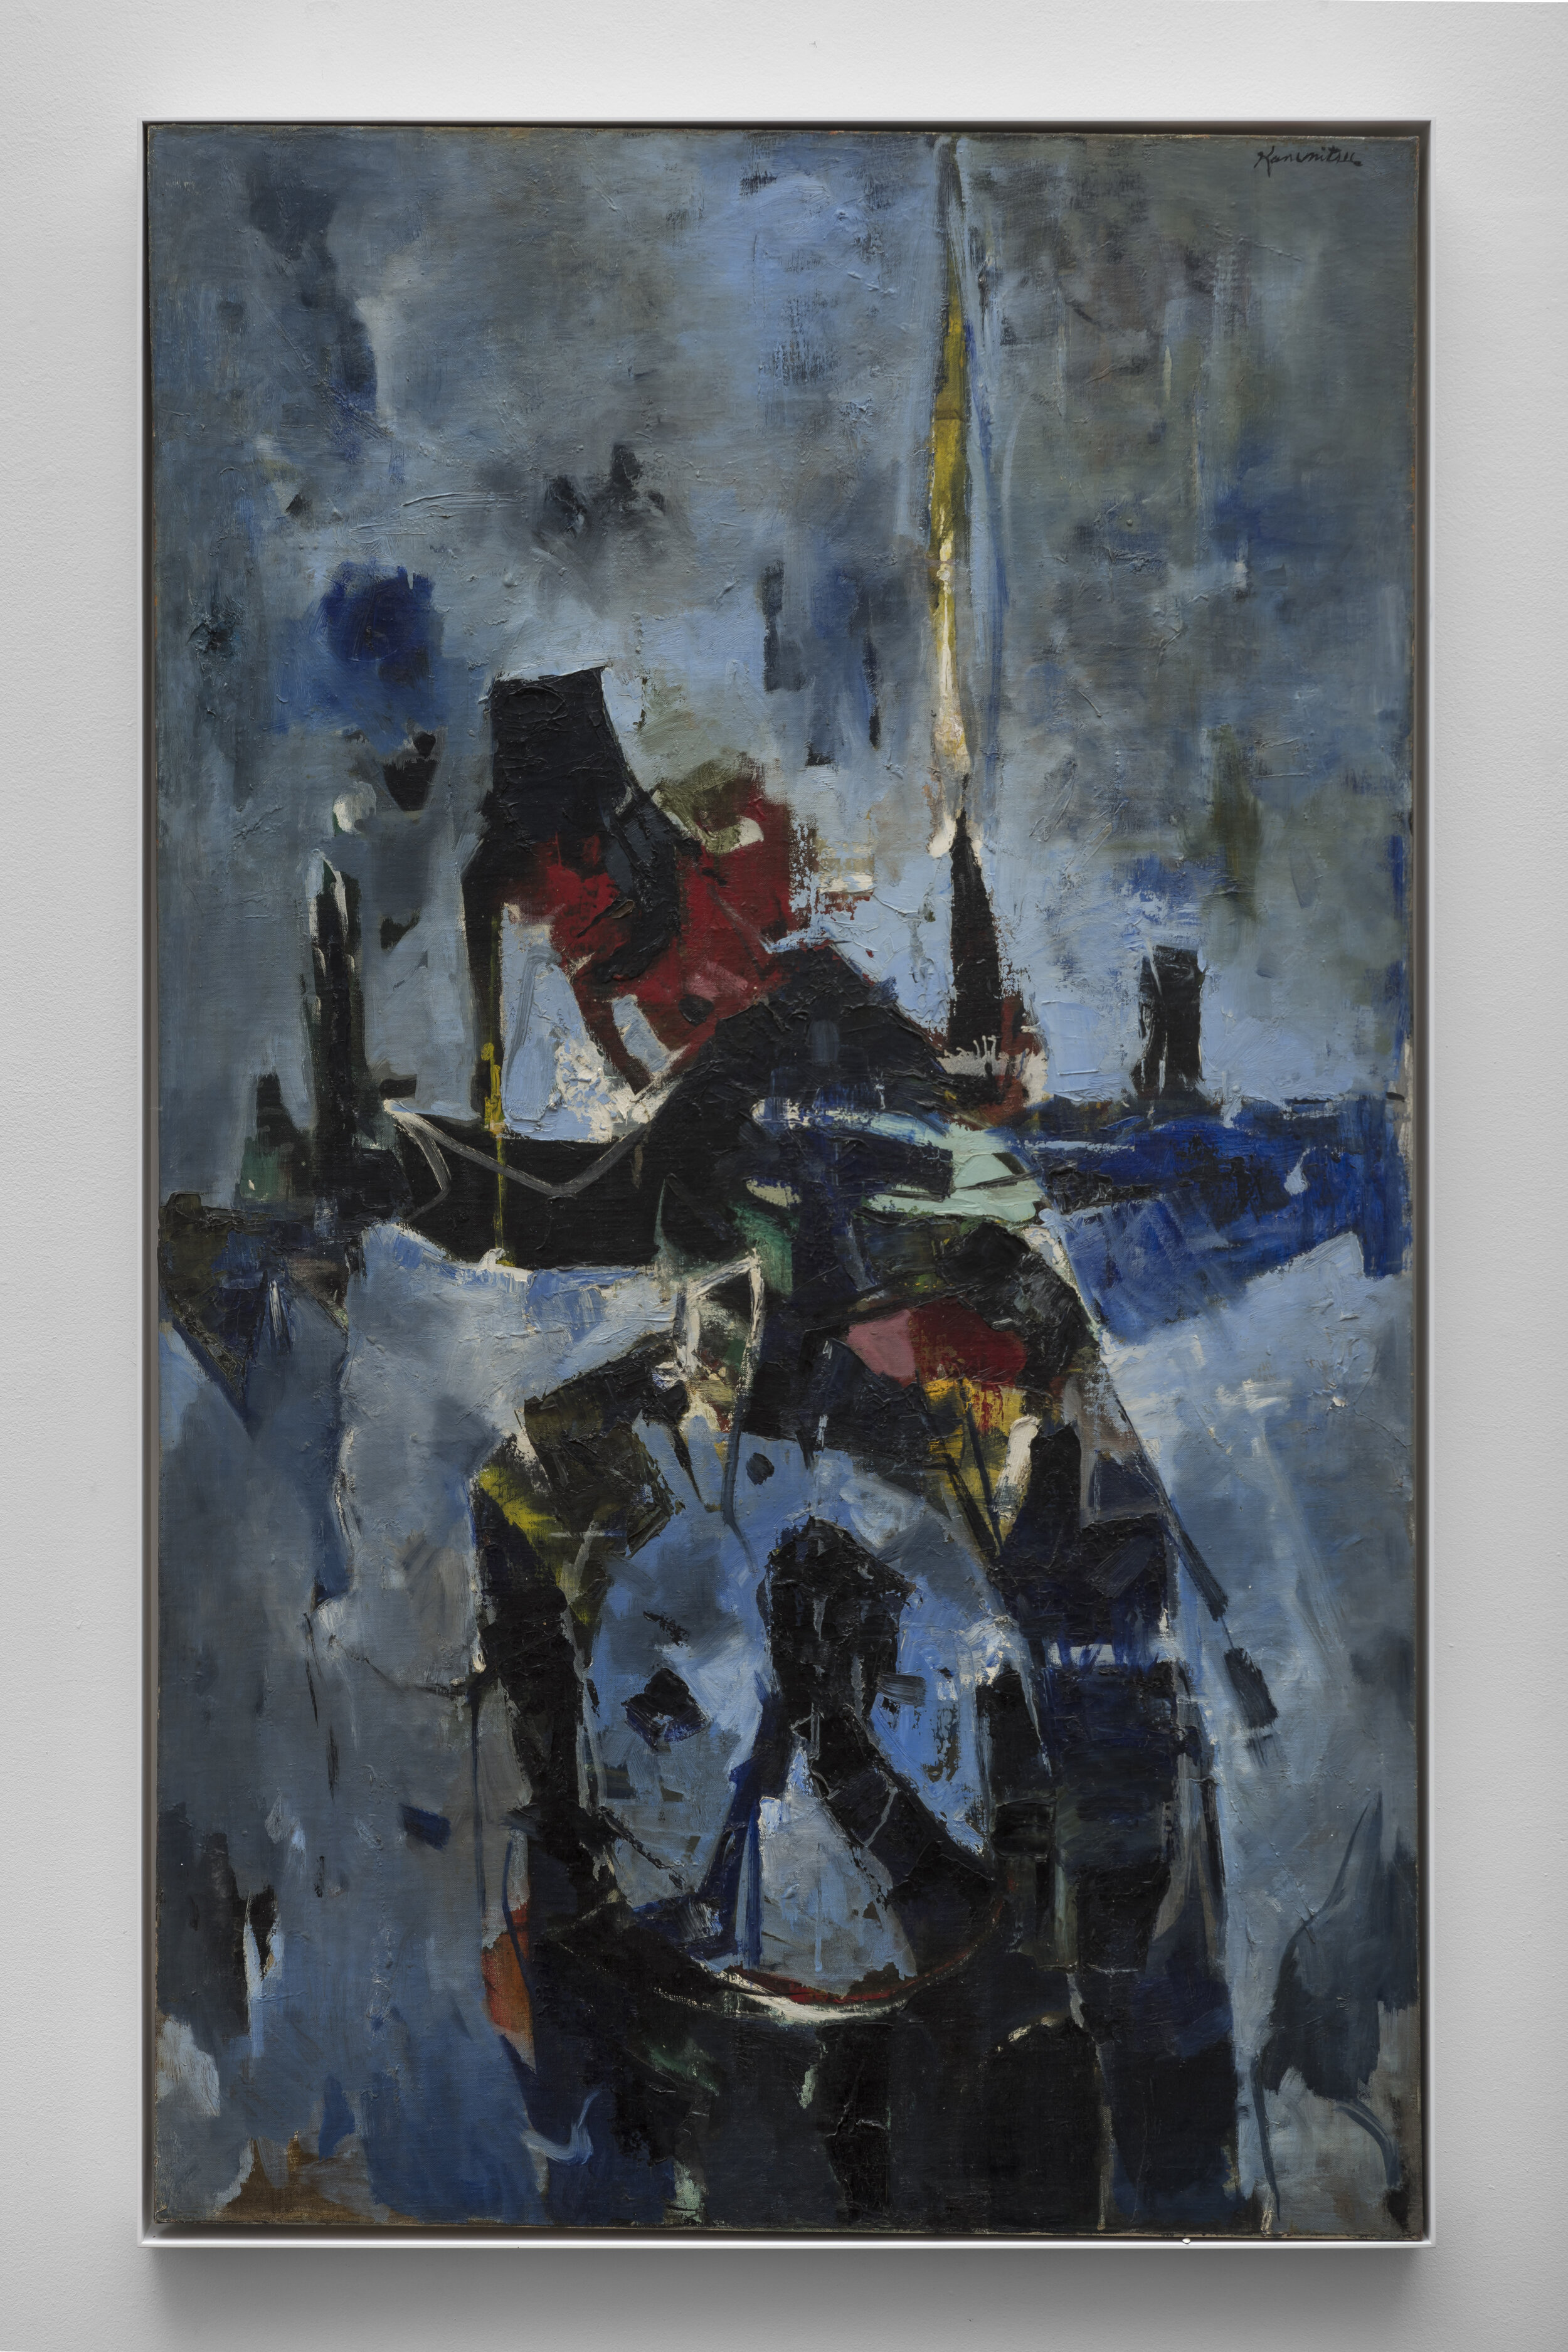 Sinking Bird , 1957 oil on canvas 50 1/2 x 30 inches; 128.3 x 76.2 centimeters